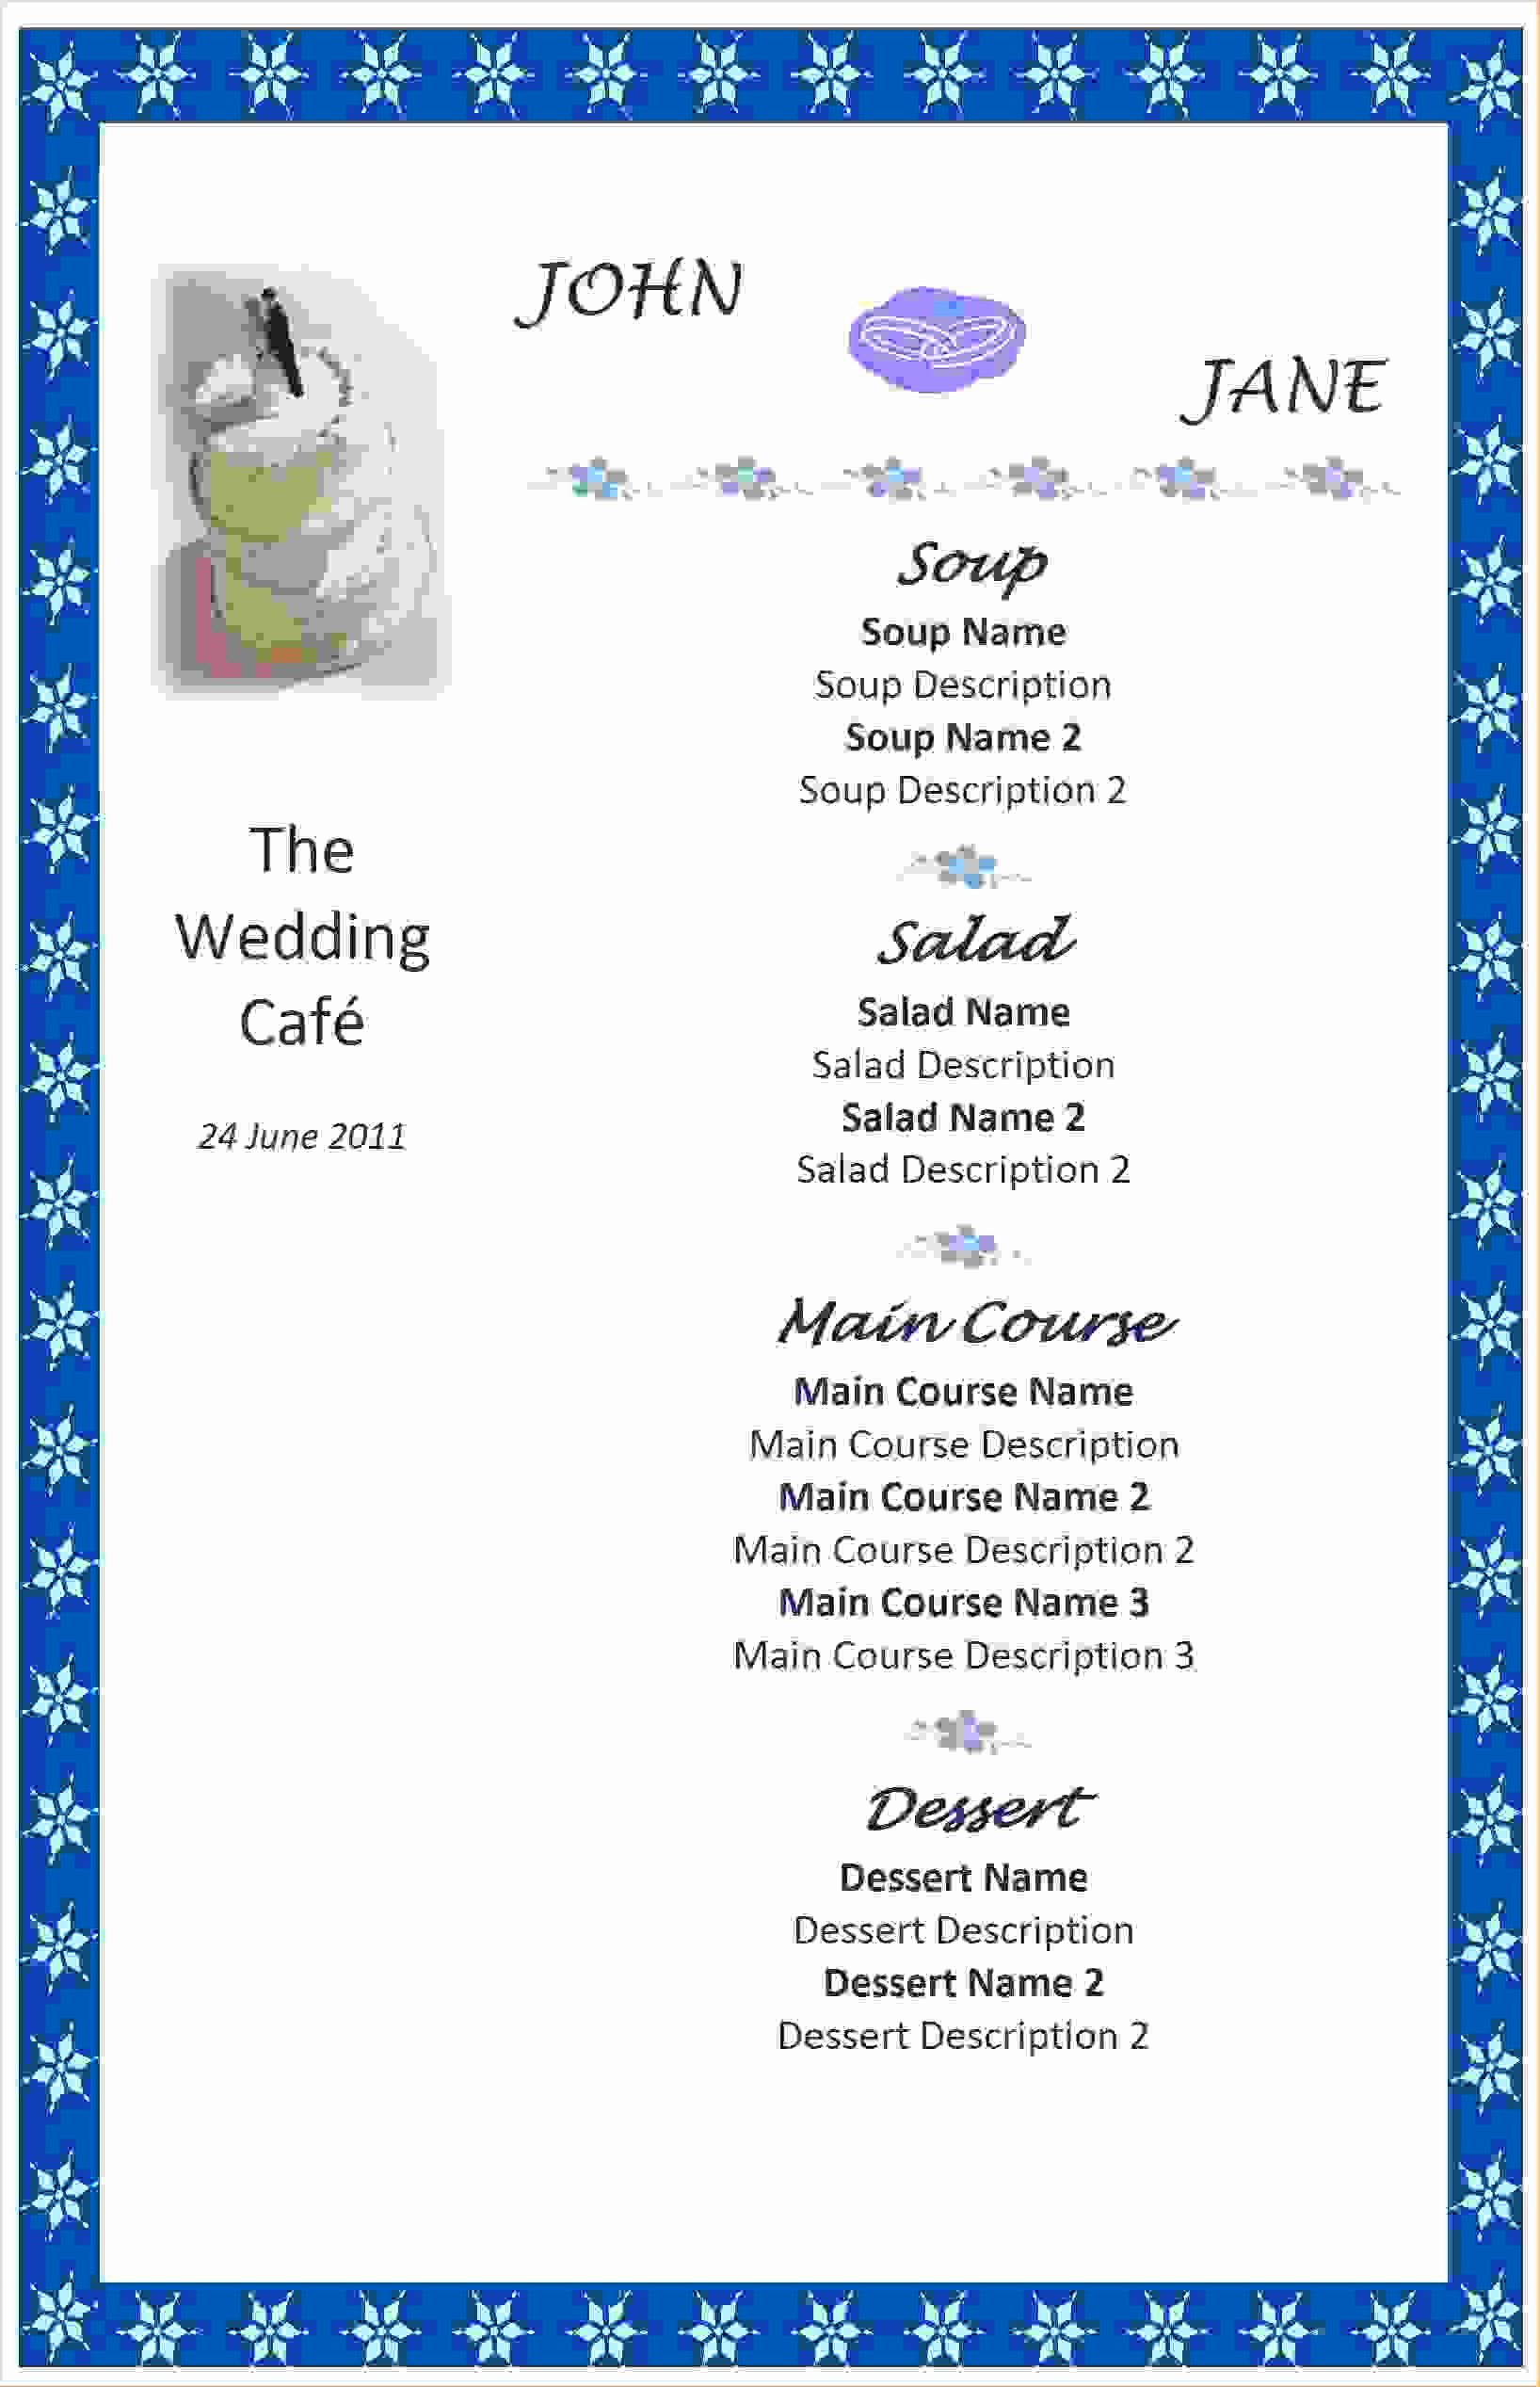 Free Microsoft Templates for Word Lovely 7 Free Menu Templates for Word